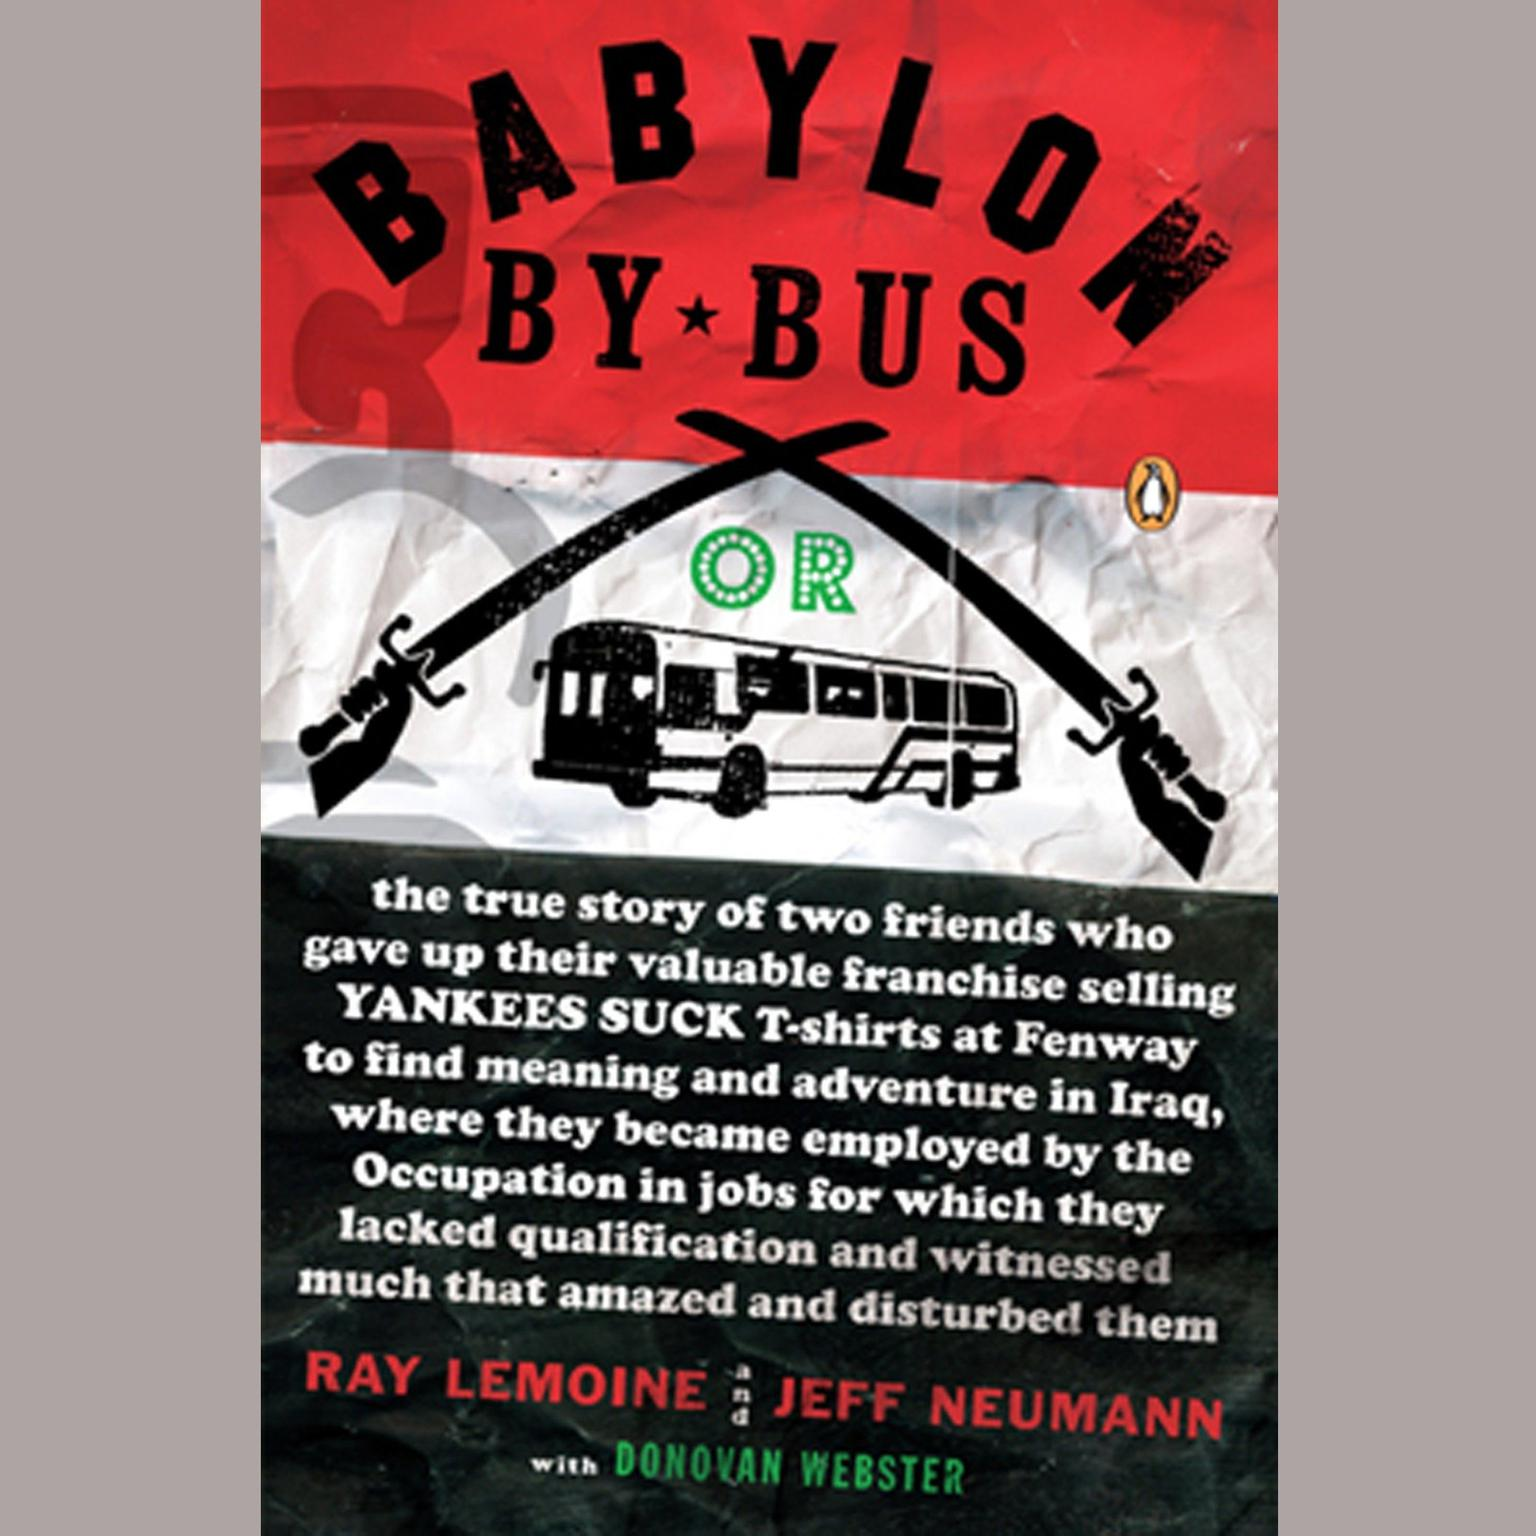 Printable Babylon by Bus: Or true story of two friends who gave up valuable franchise selling T-shirts to find meaning & adventure in Iraq where they became employed by the Occupation... Audiobook Cover Art